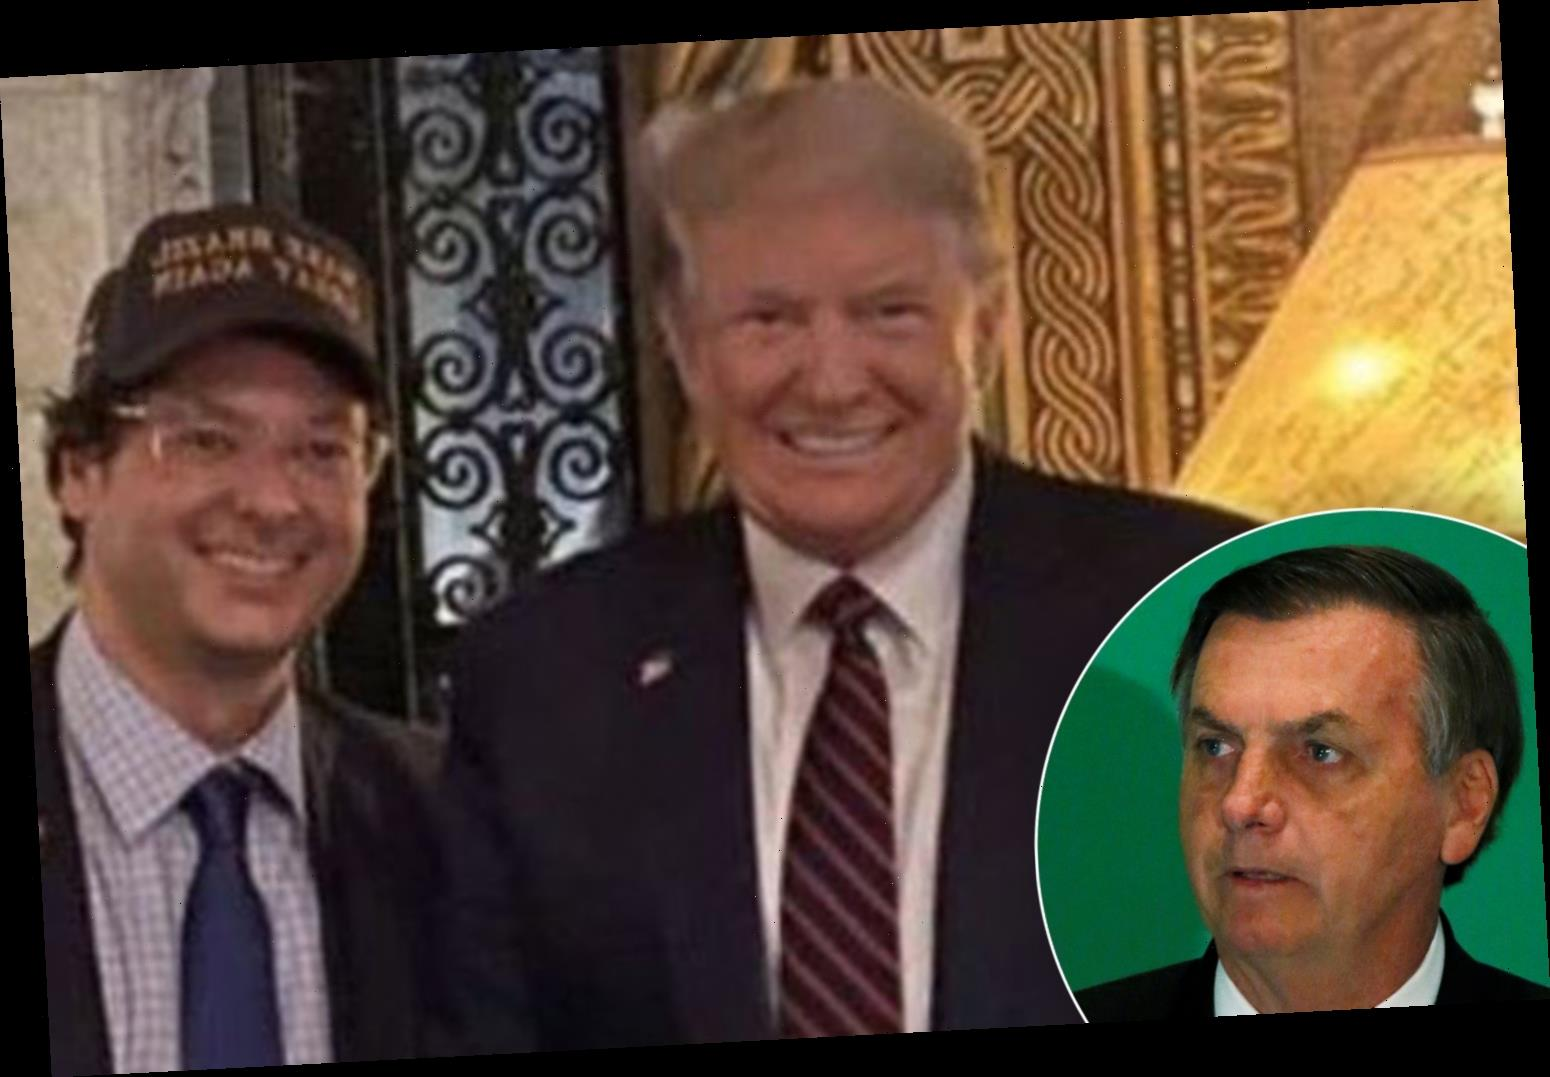 Brazilian president aide tests positive for coronavirus days after posing with Trump and VP Mike Pence at Mar-a-Lago – The Sun